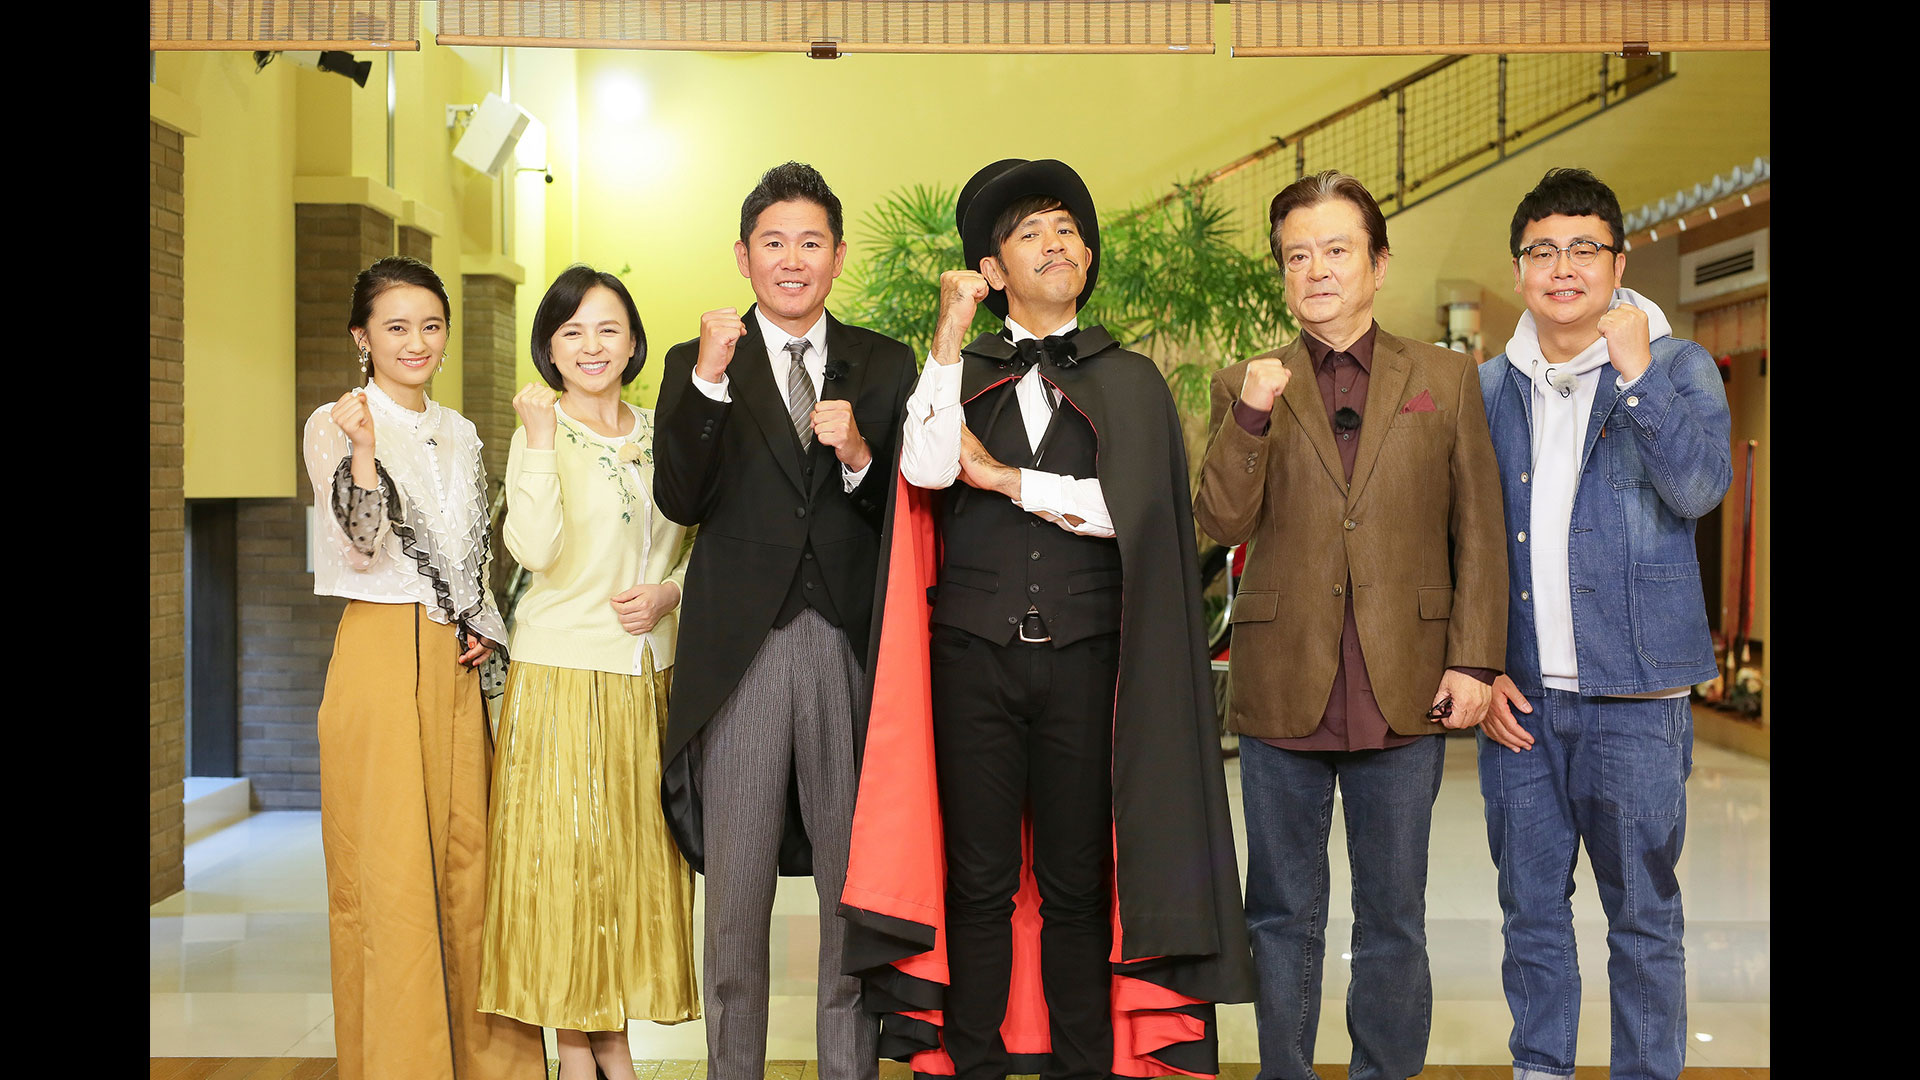 Detective Team 9 for Local Gourmet in Center of Japan